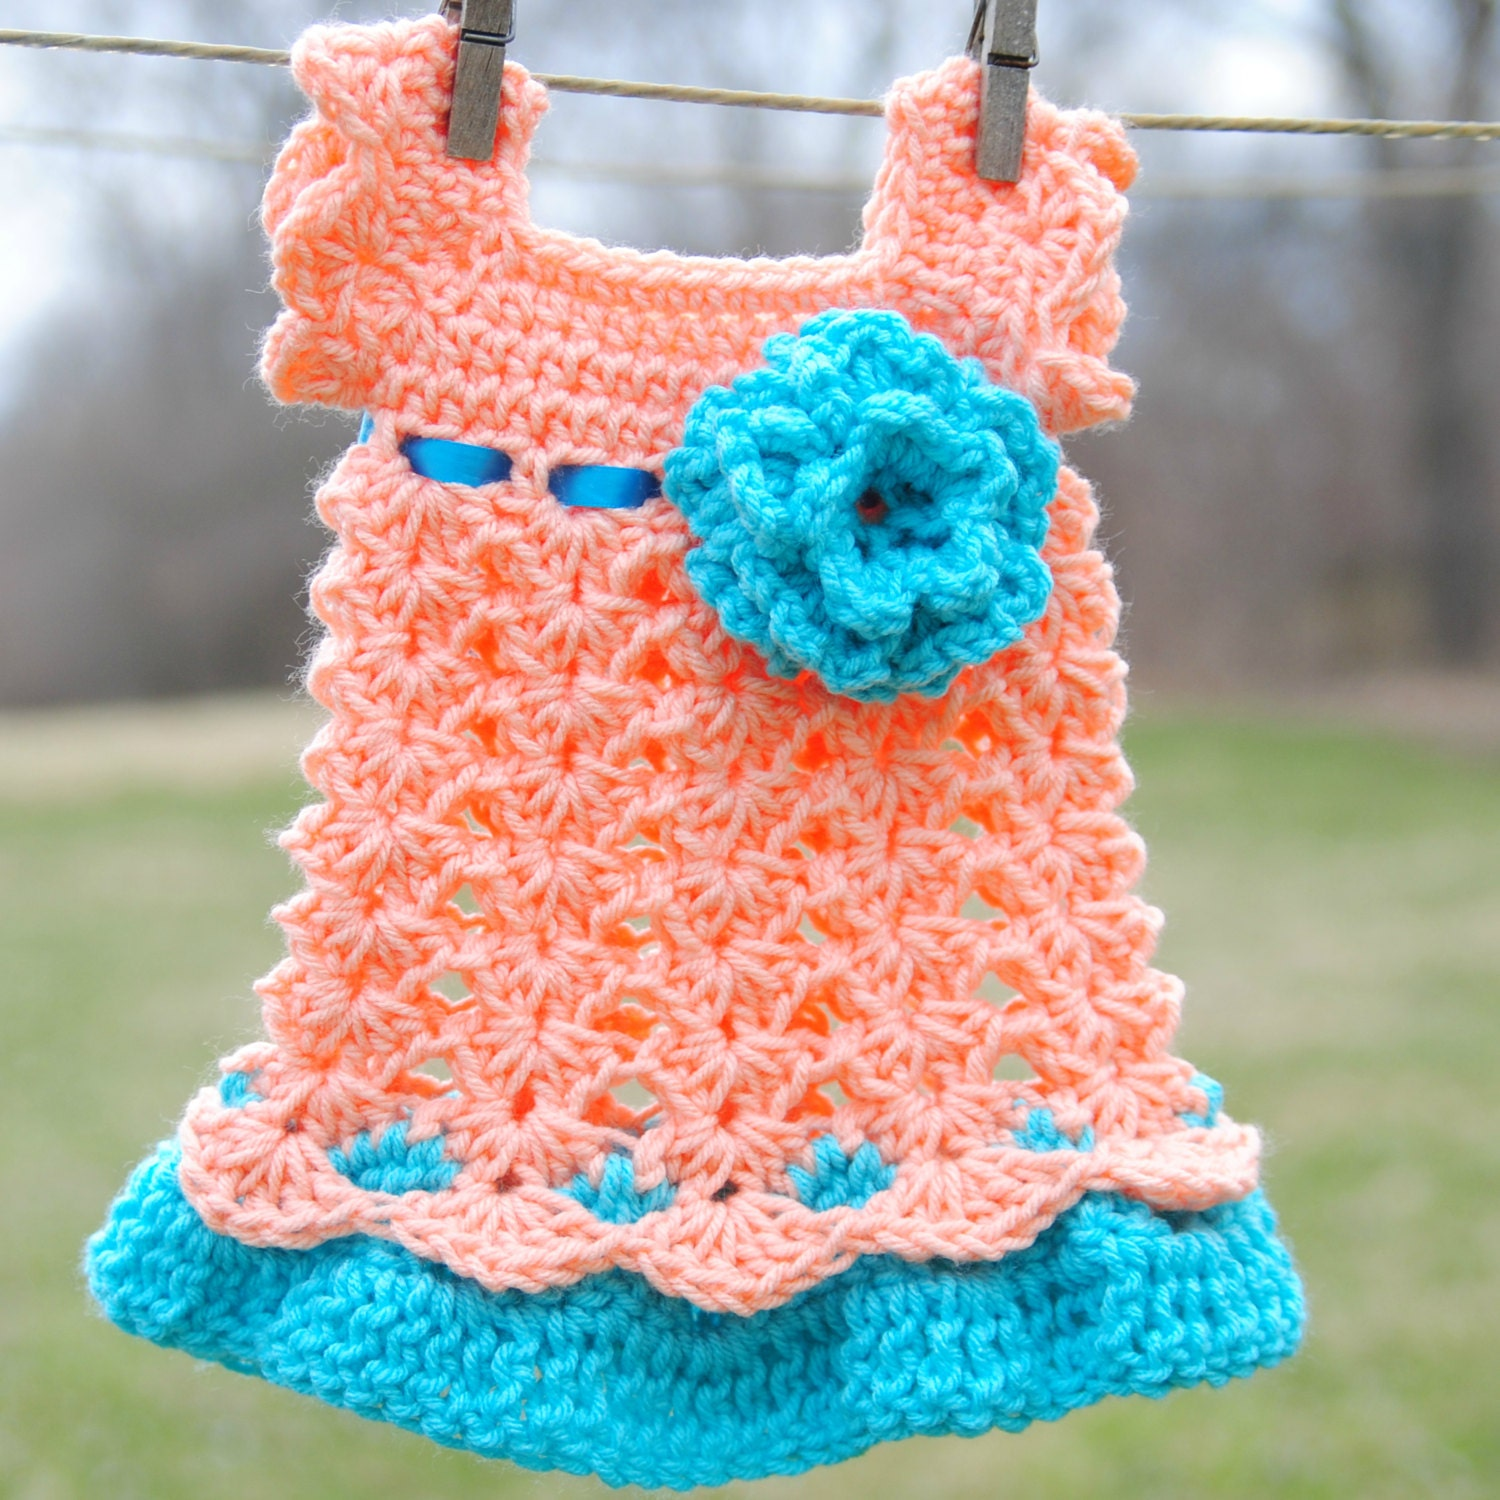 Newborn Dress Peach and Teal Infant Outfit Baby Girl by